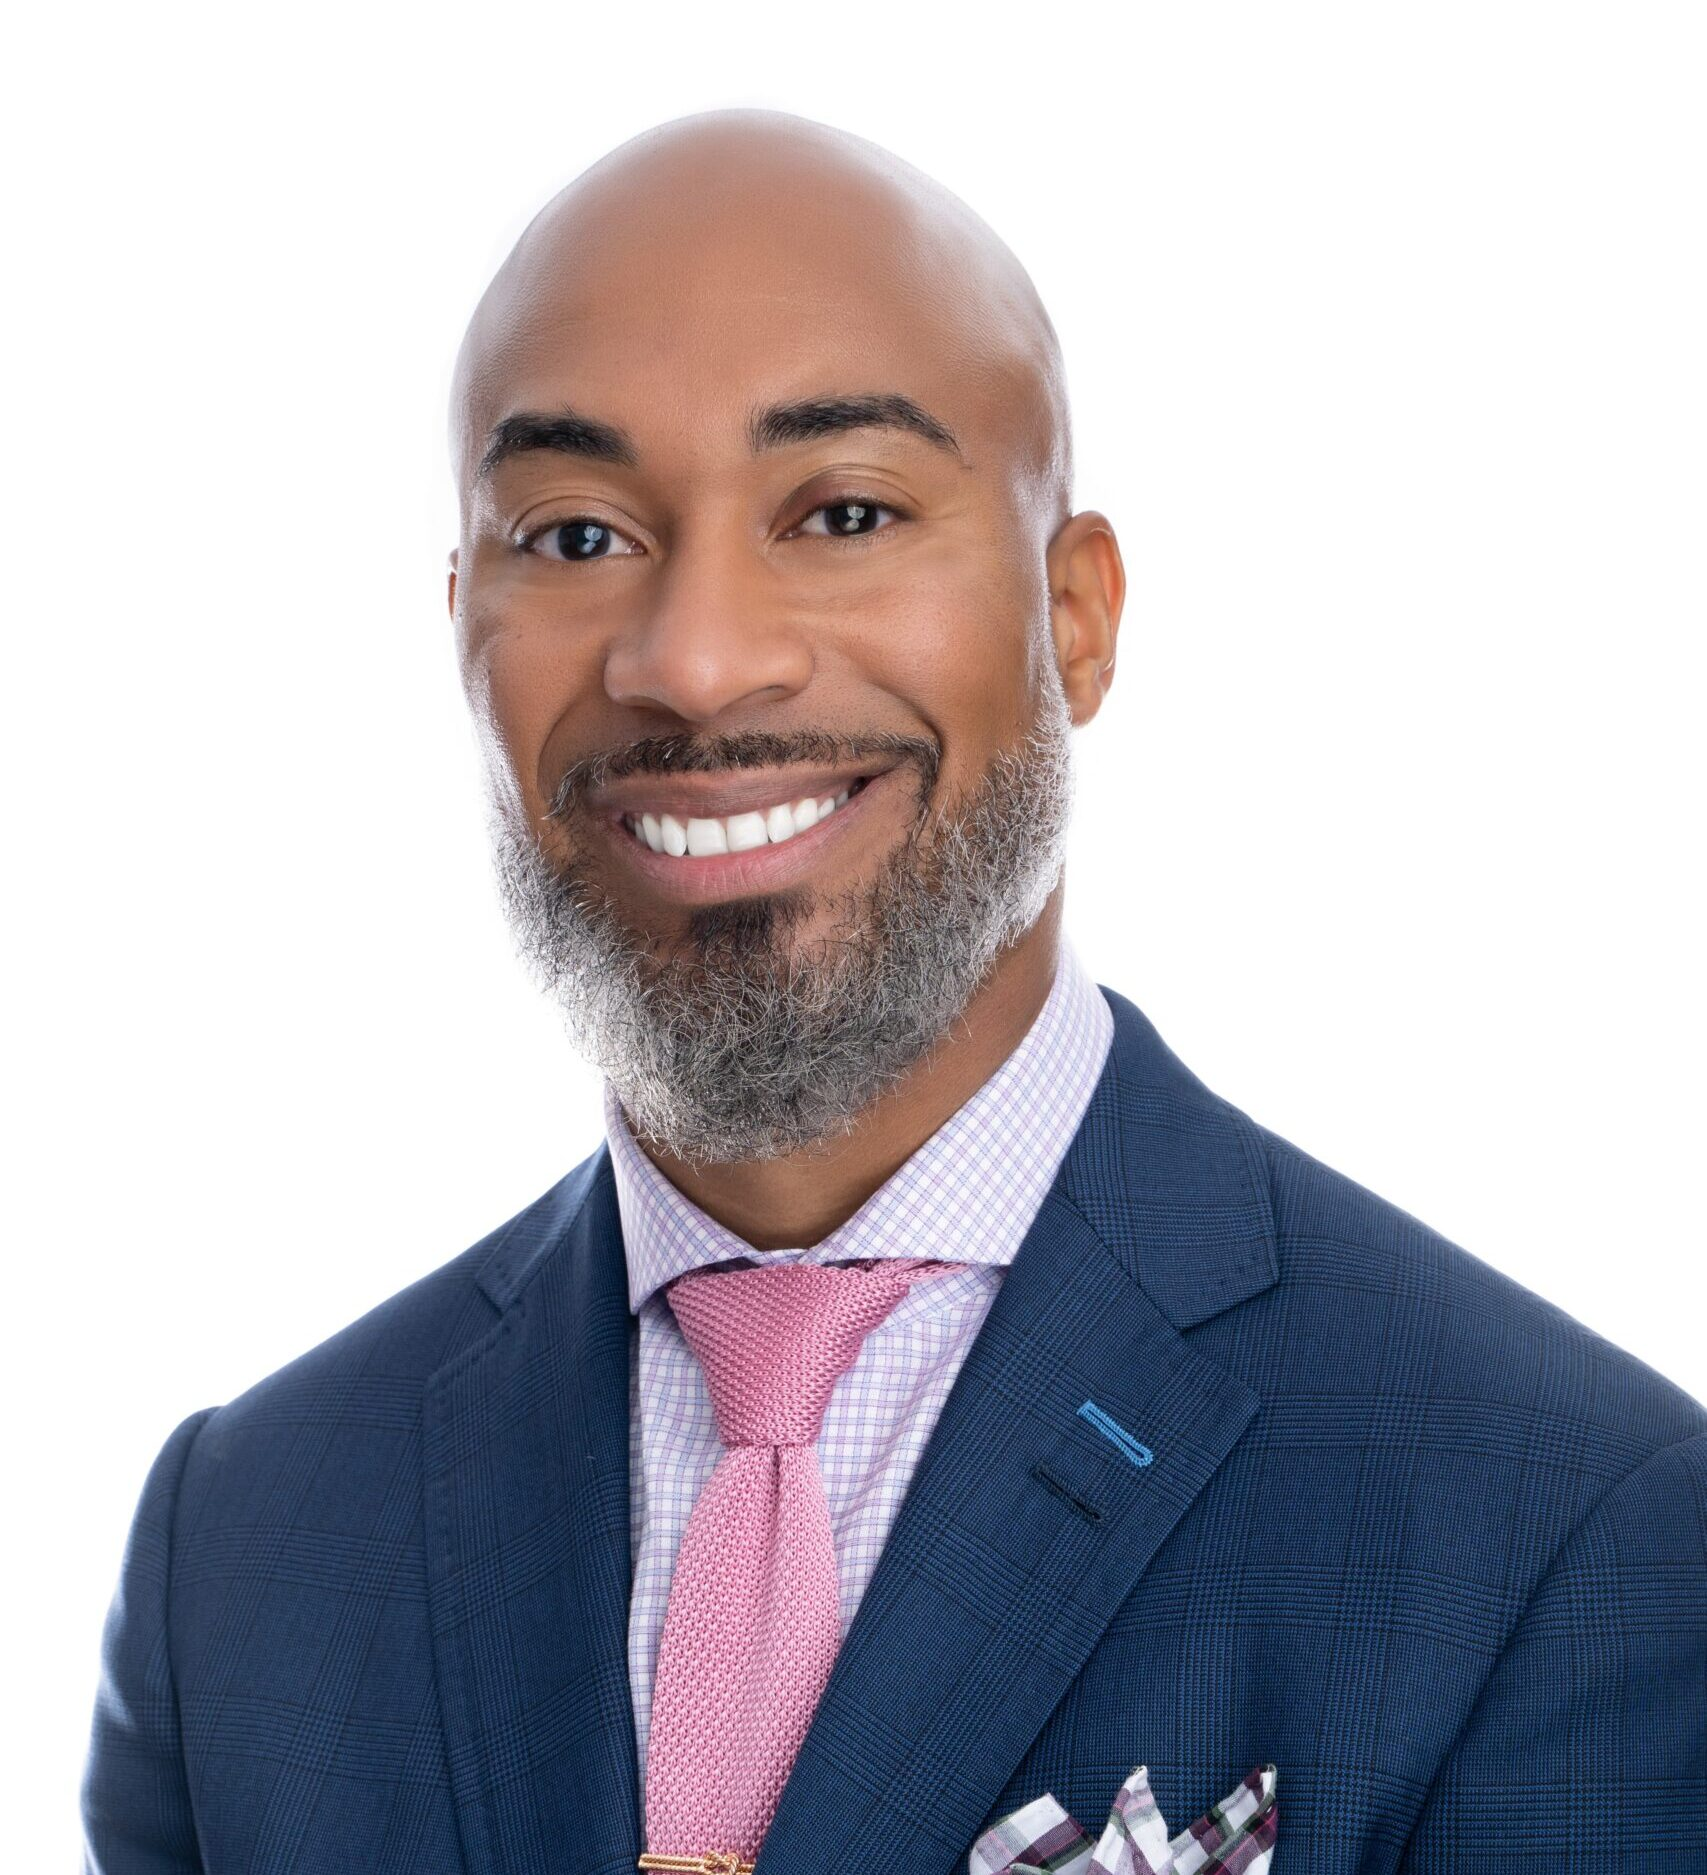 Interview with Melvin J. Brown, Ed.D., Superintendent of Ohio's Reynoldsburg City Schools, on the Equity Work in His District